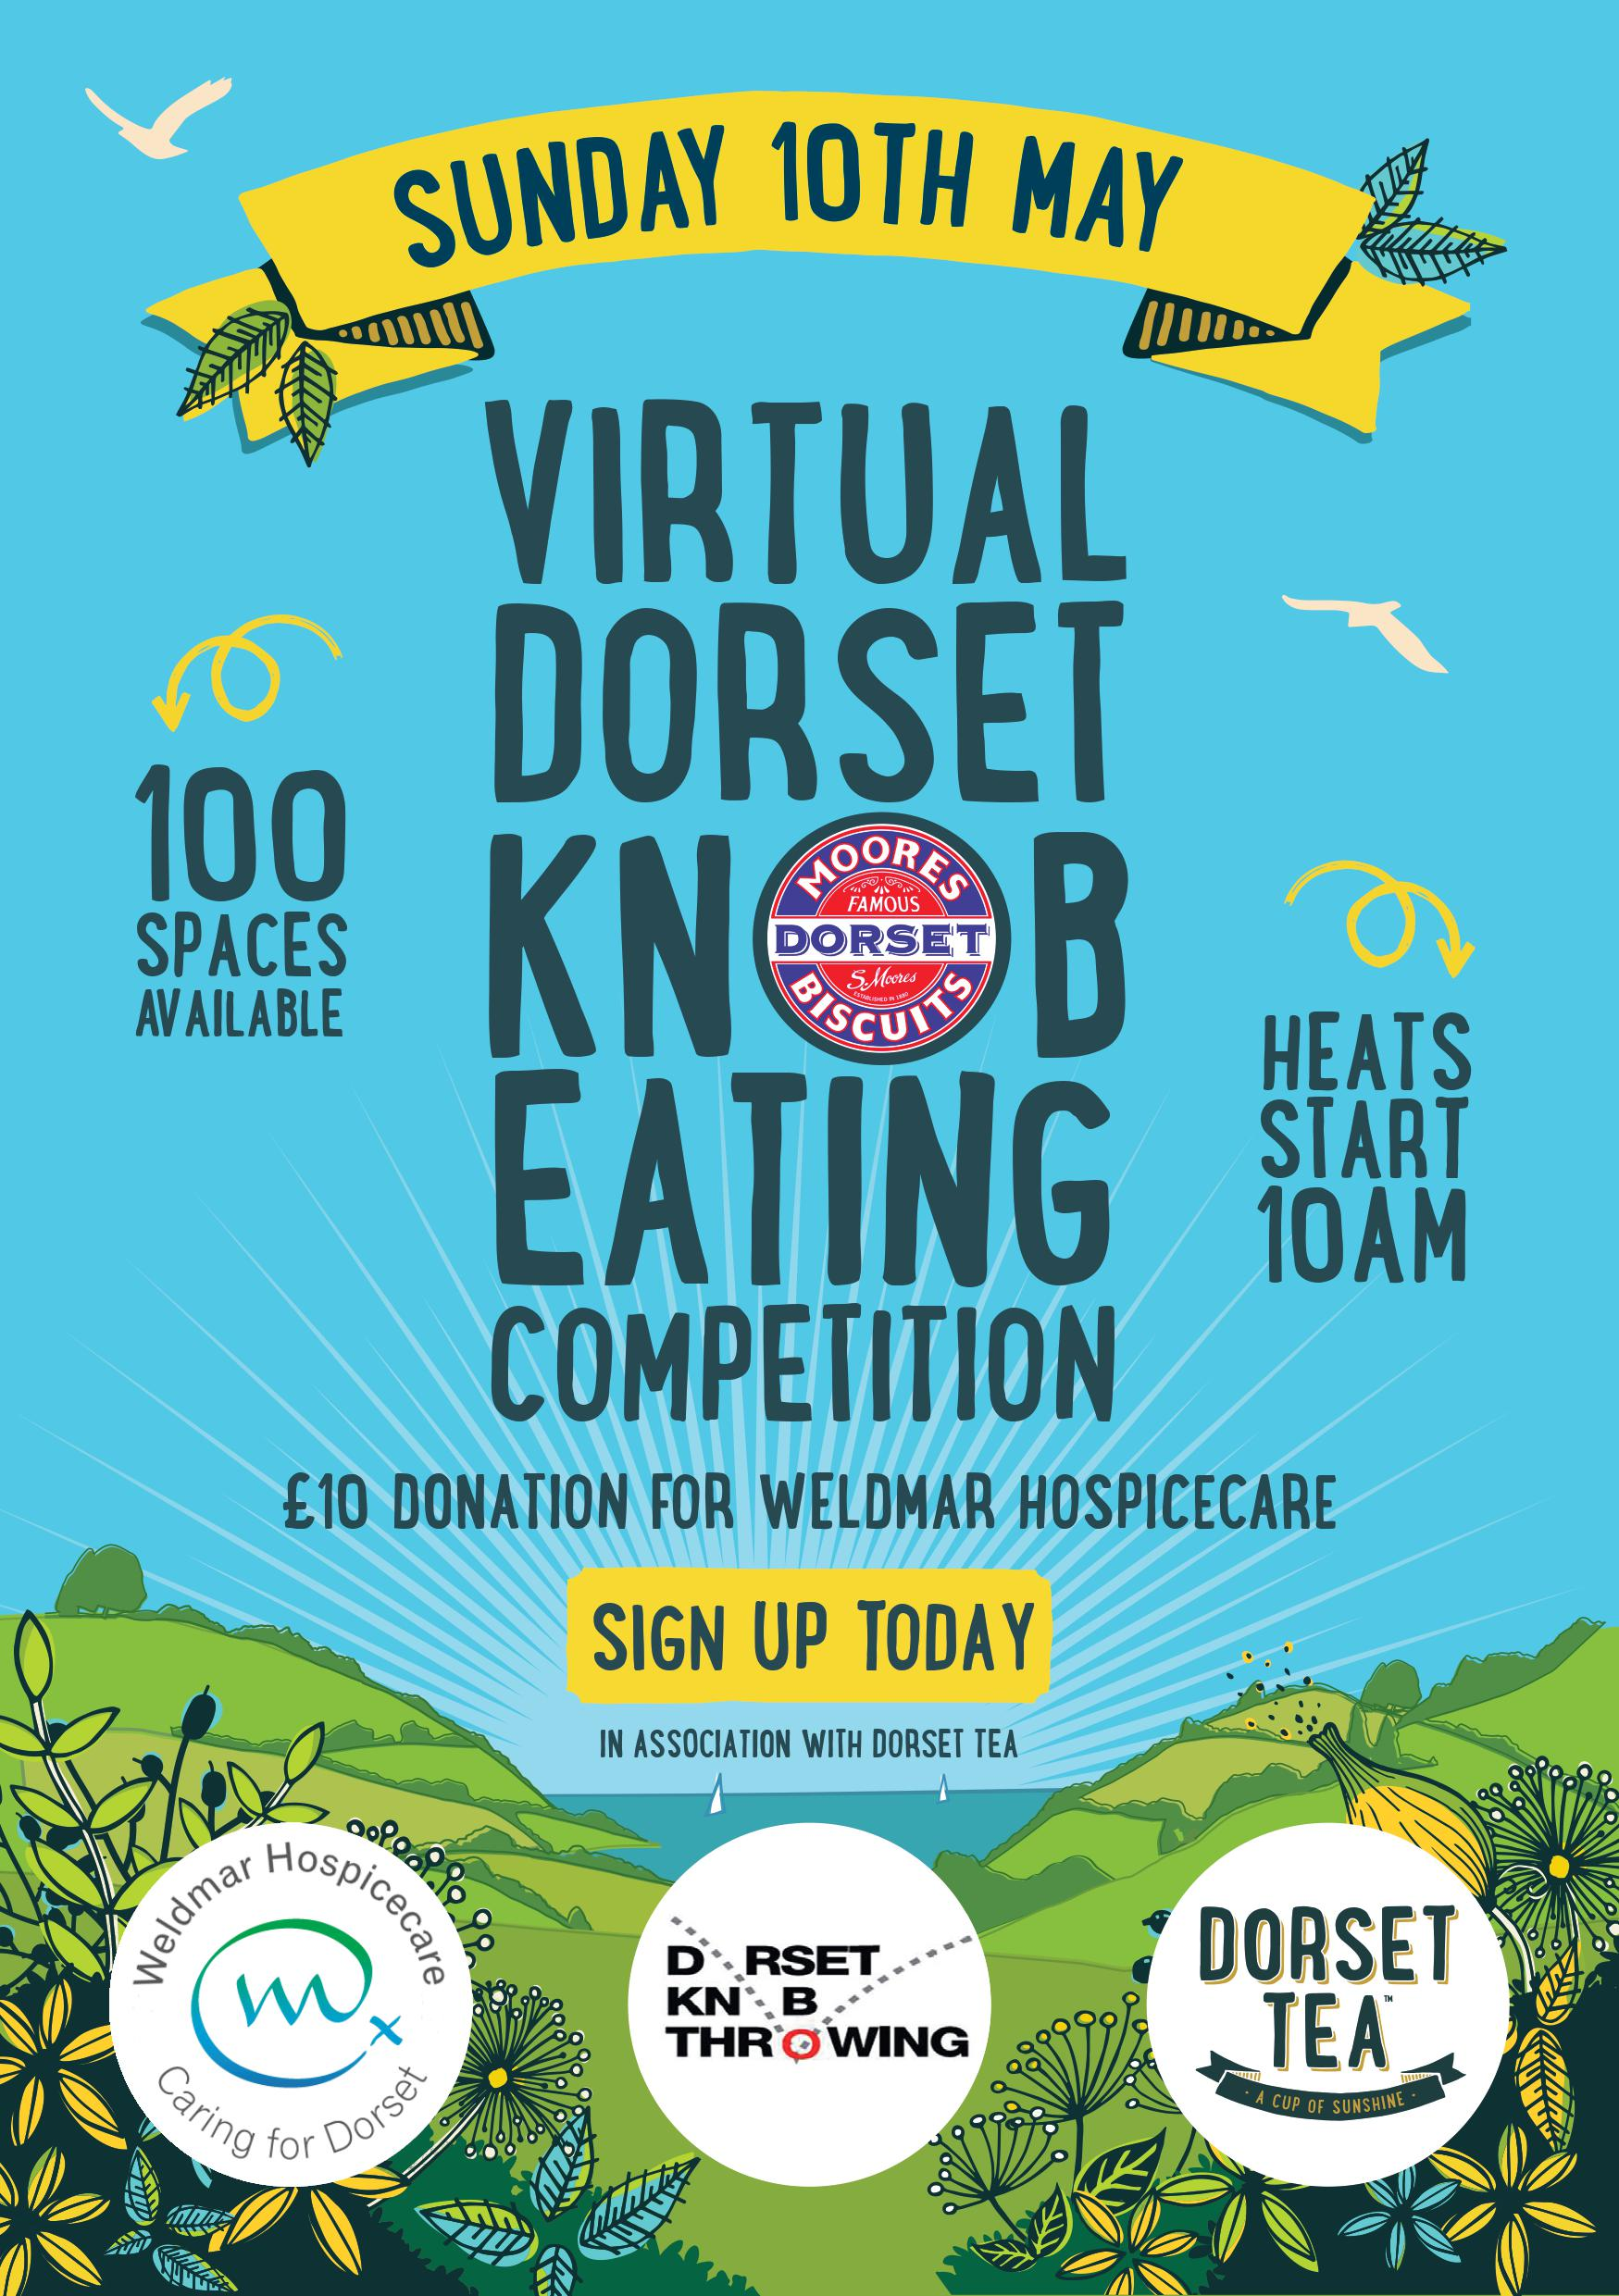 Dorset knob eating competition poster.